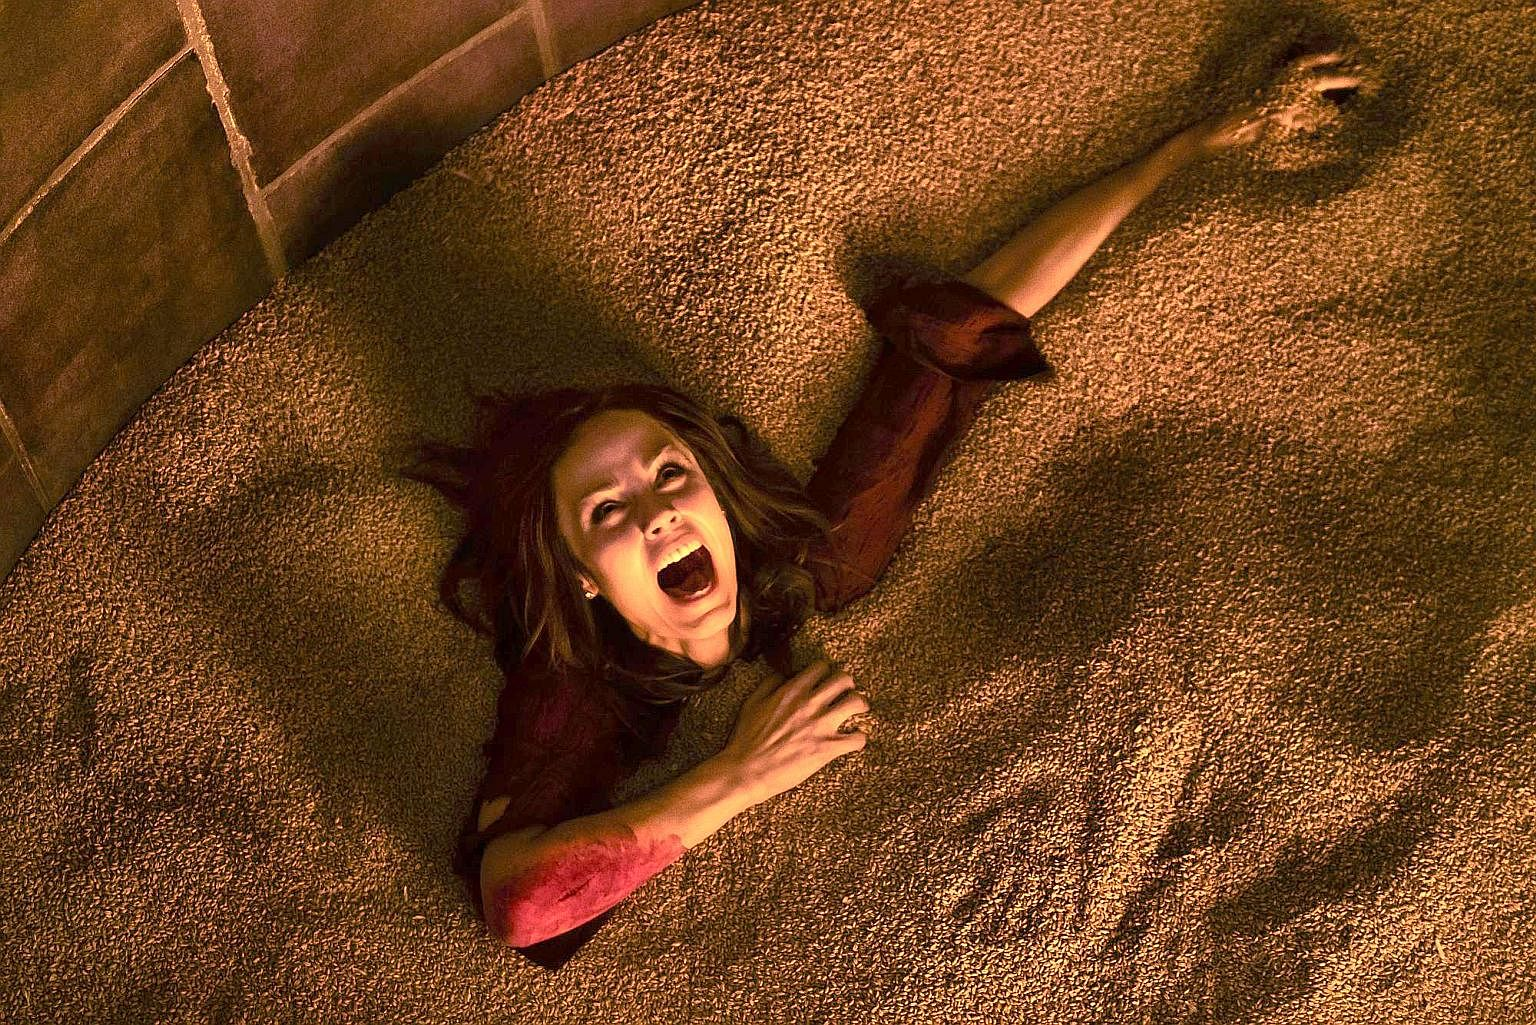 Showing on Netflix are The Babysitter, starring Samara Weaving and Judah Lewis (both above), and 1922, starring Thomas Jane (left). Jigsaw, featuring Laura Vandervoort (right), is the eighth instalment of the Saw franchise.